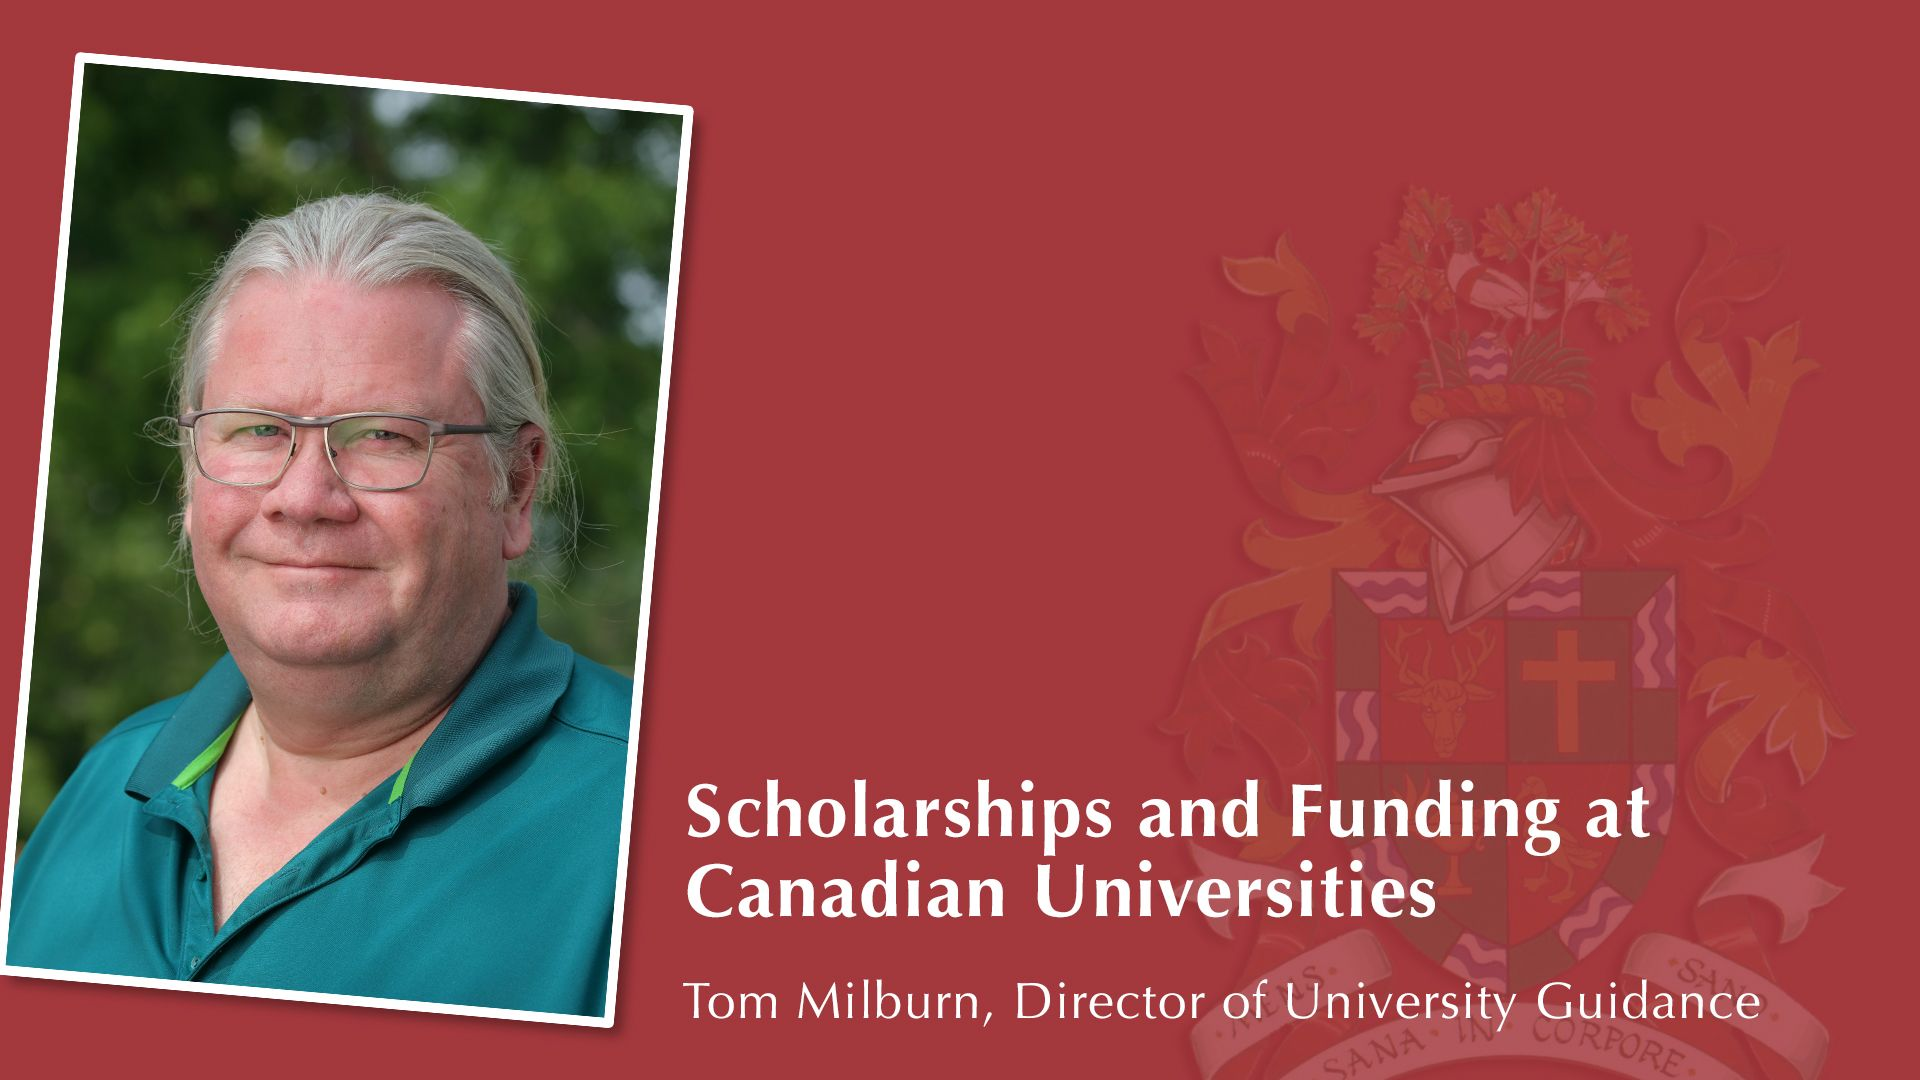 Scholarships and Funding at Canadian Universities